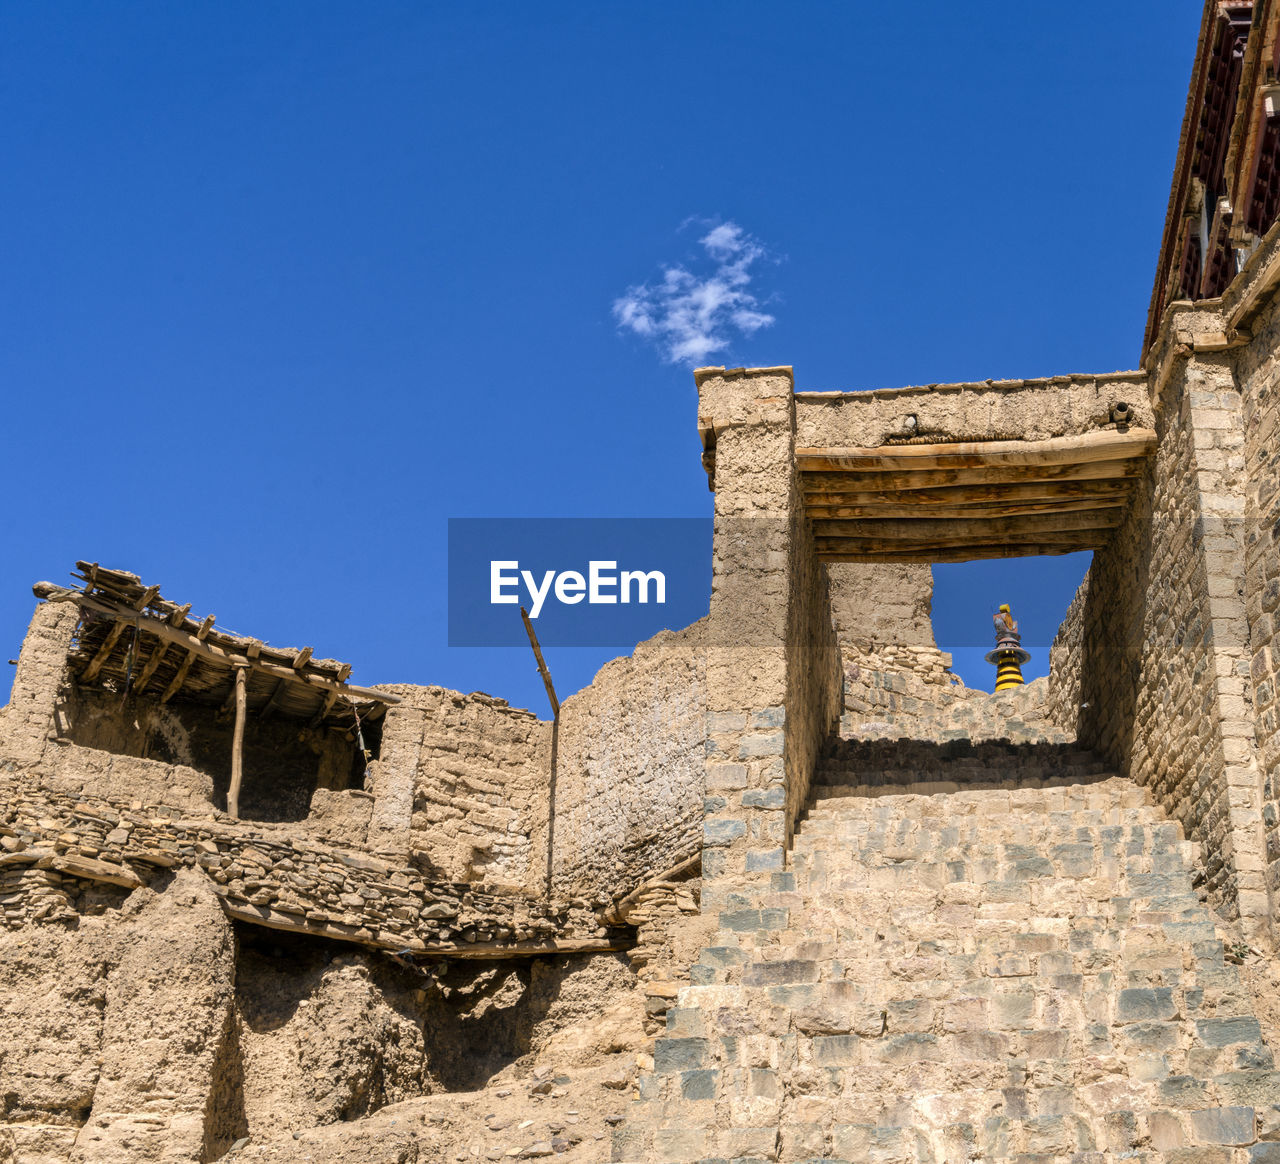 architecture, built structure, history, the past, sky, old ruin, ancient, low angle view, building exterior, blue, day, nature, no people, ancient civilization, damaged, travel destinations, sunlight, old, tourism, building, ruined, outdoors, archaeology, stone wall